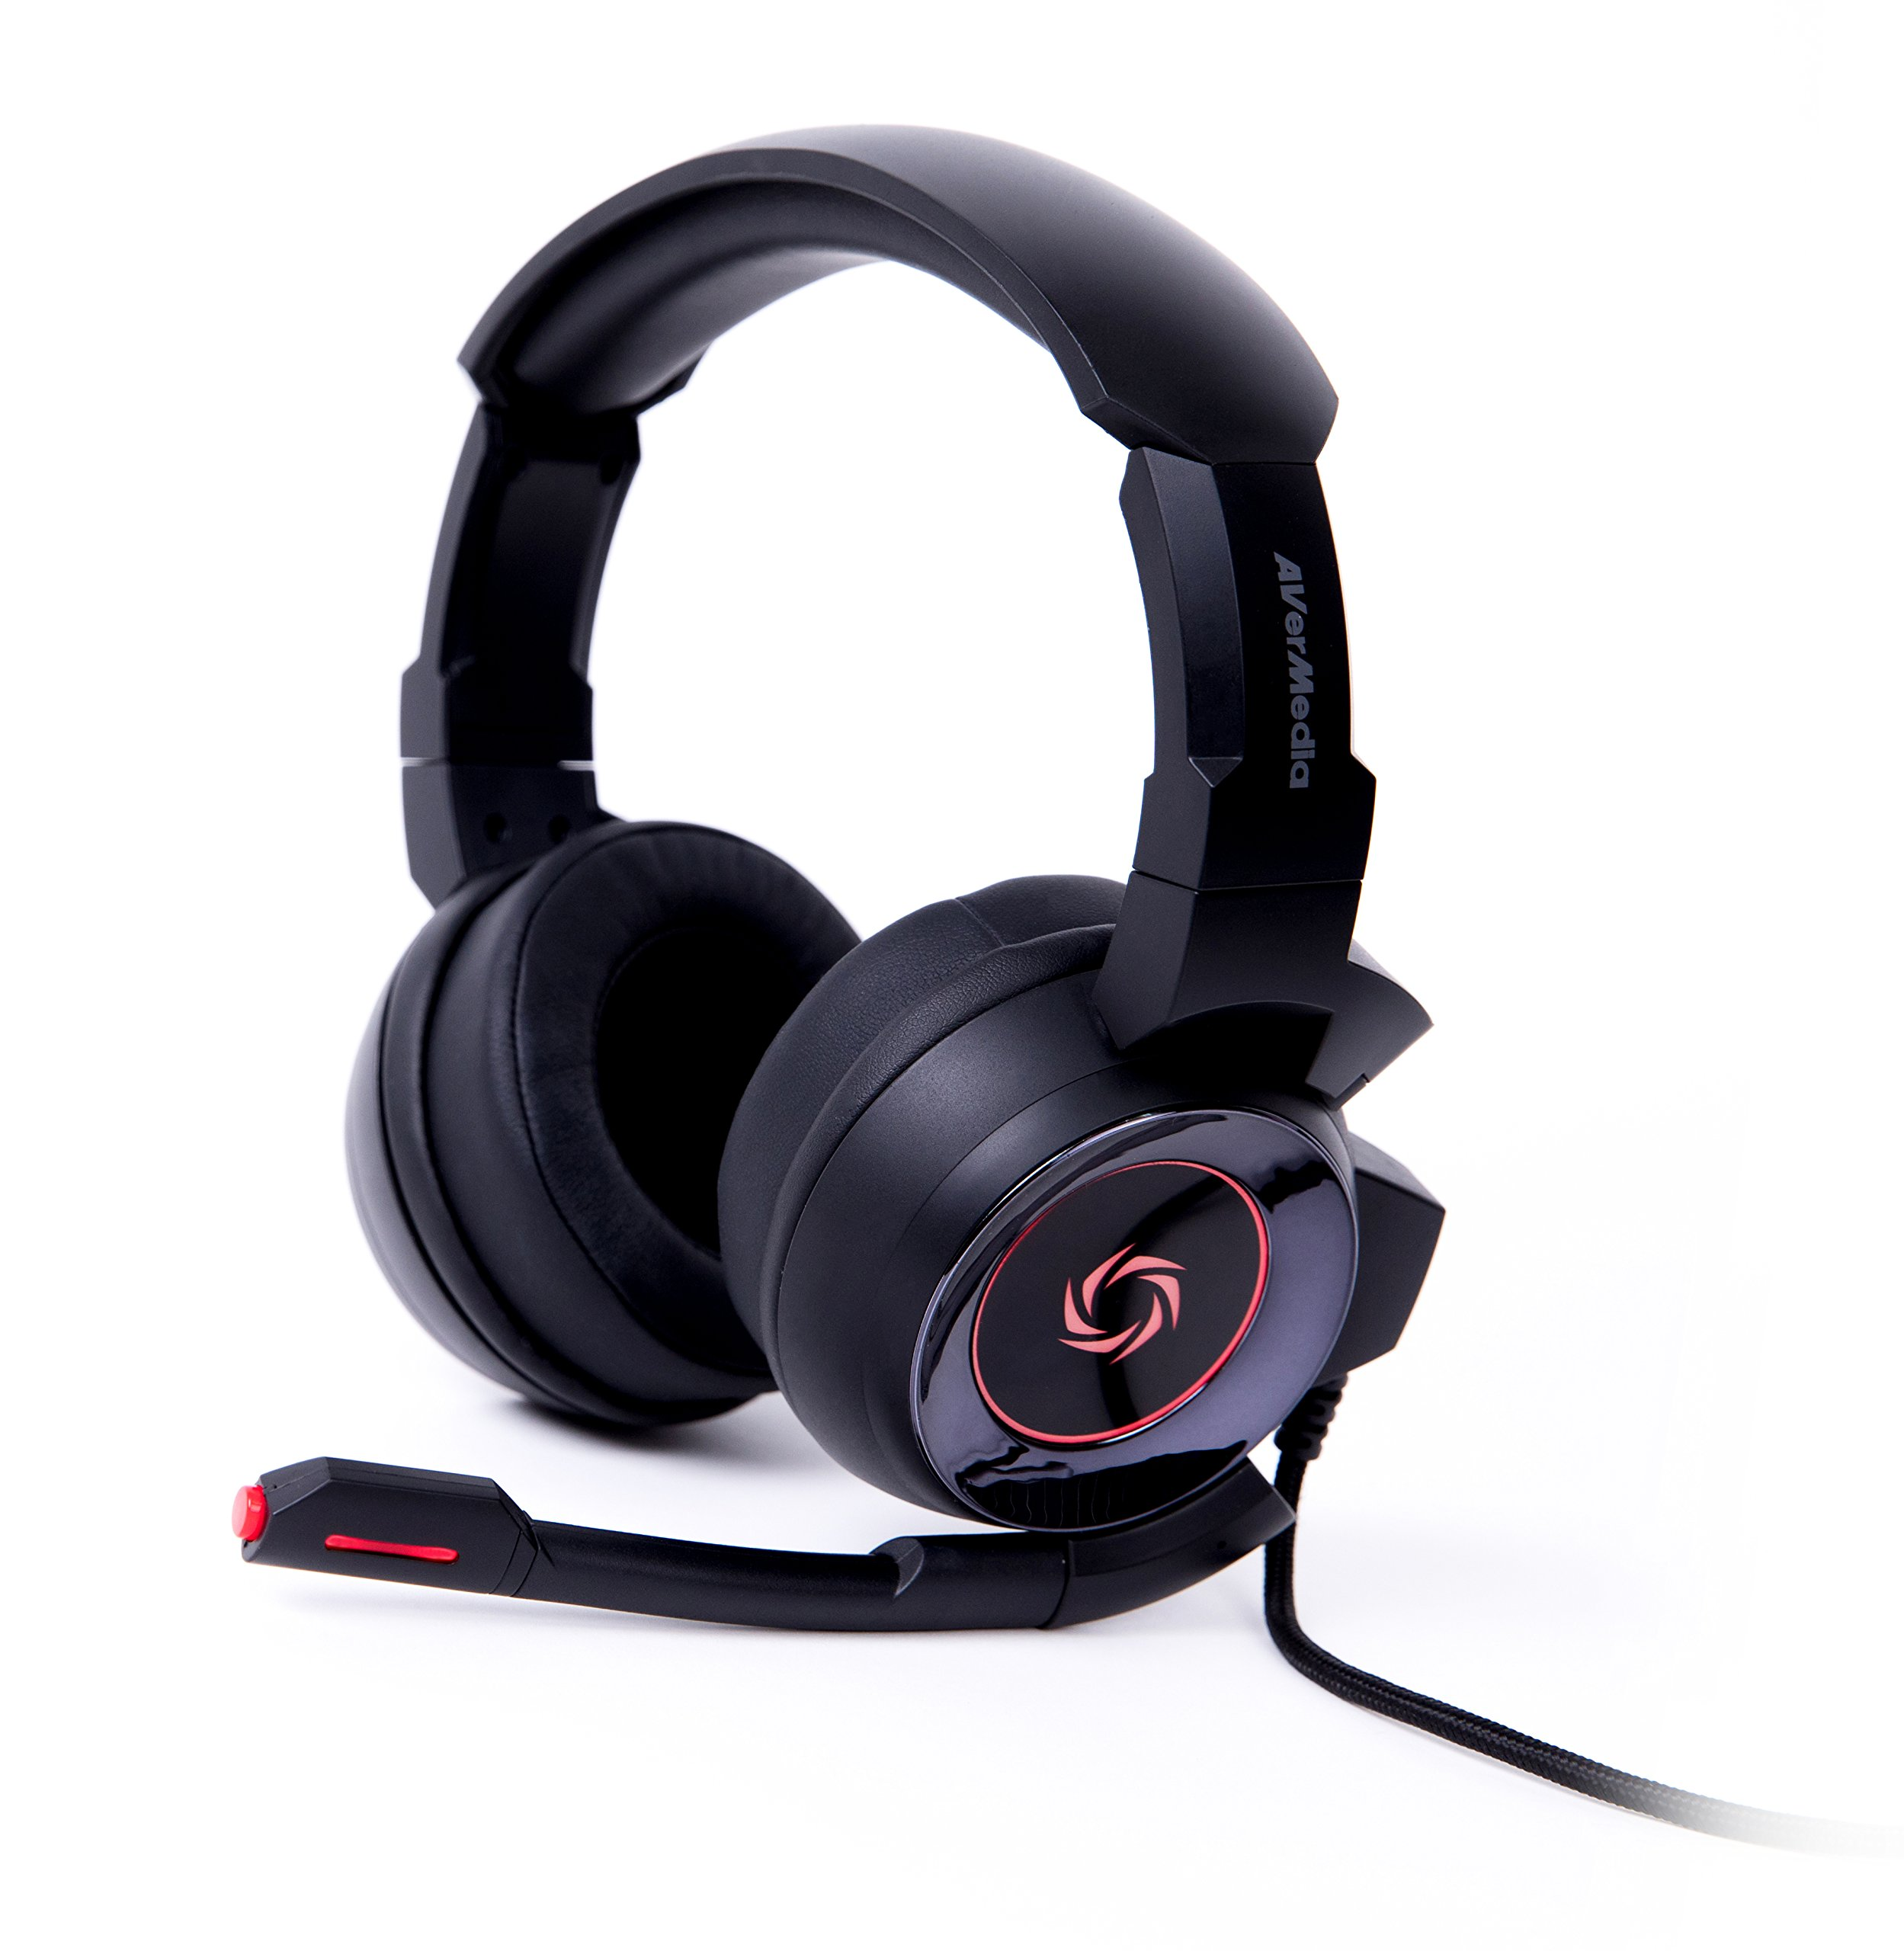 AVerMedia SonicWave USB 7.1 Gaming Headset for PC, Mac, PS4,